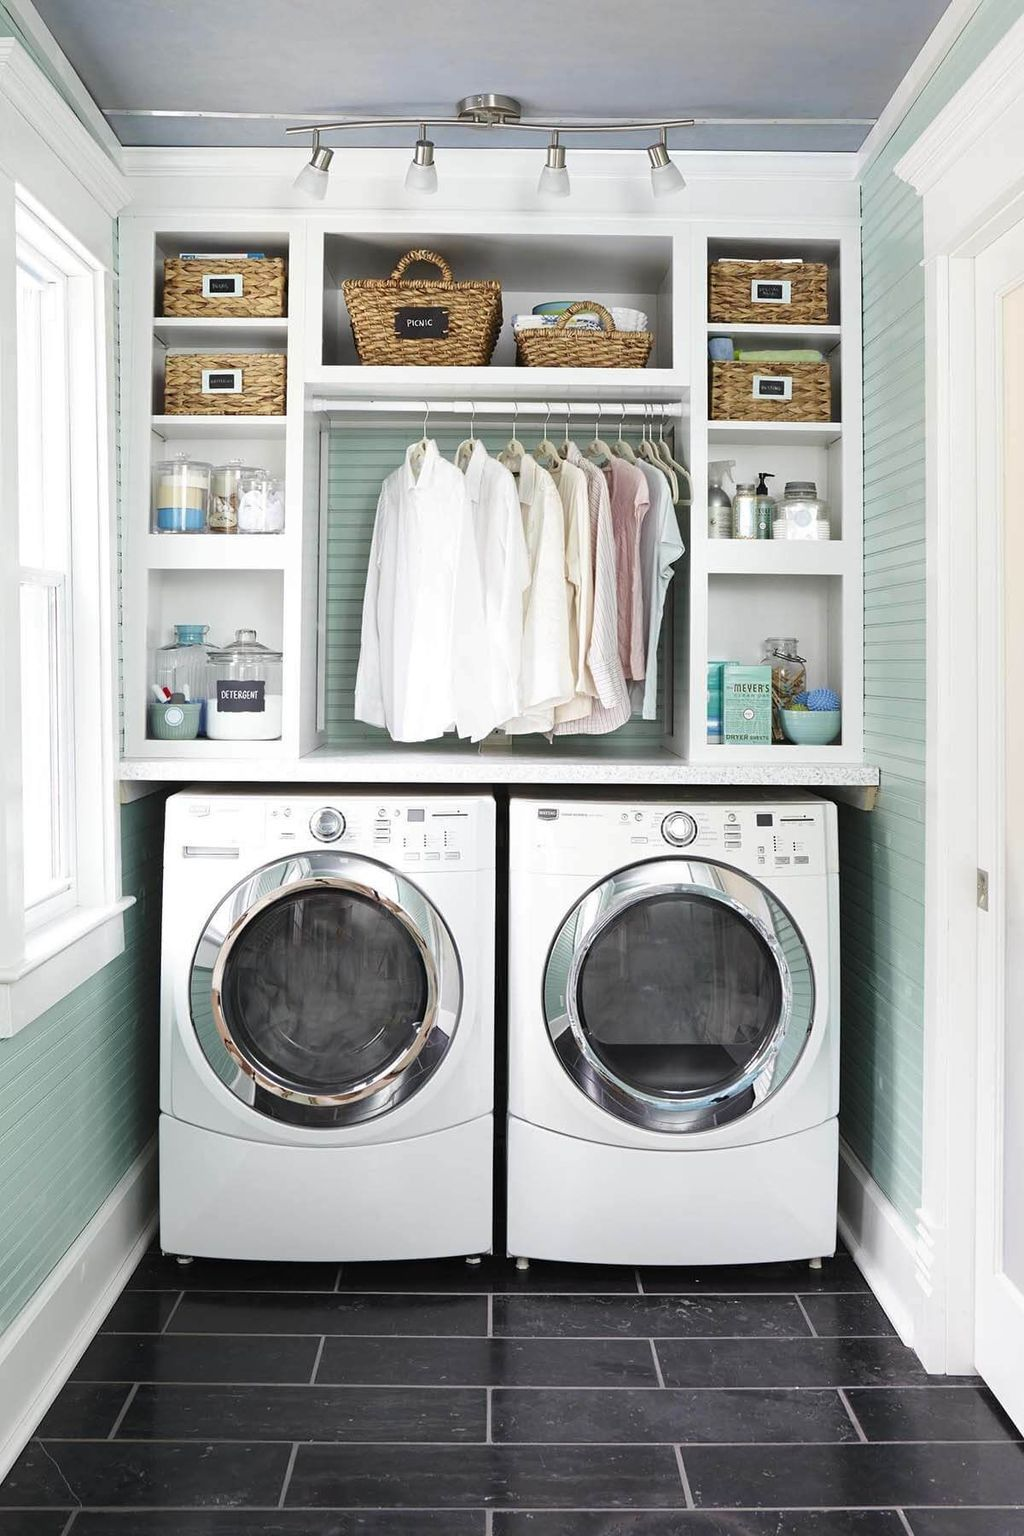 Awesome 35 Small Laundry Room Decorating Ideas https   homemainly     Awesome 35 Small Laundry Room Decorating Ideas  https   homemainly com 1147 35 small laundry room decorating ideas   nice    cozy home   Pinterest   Small